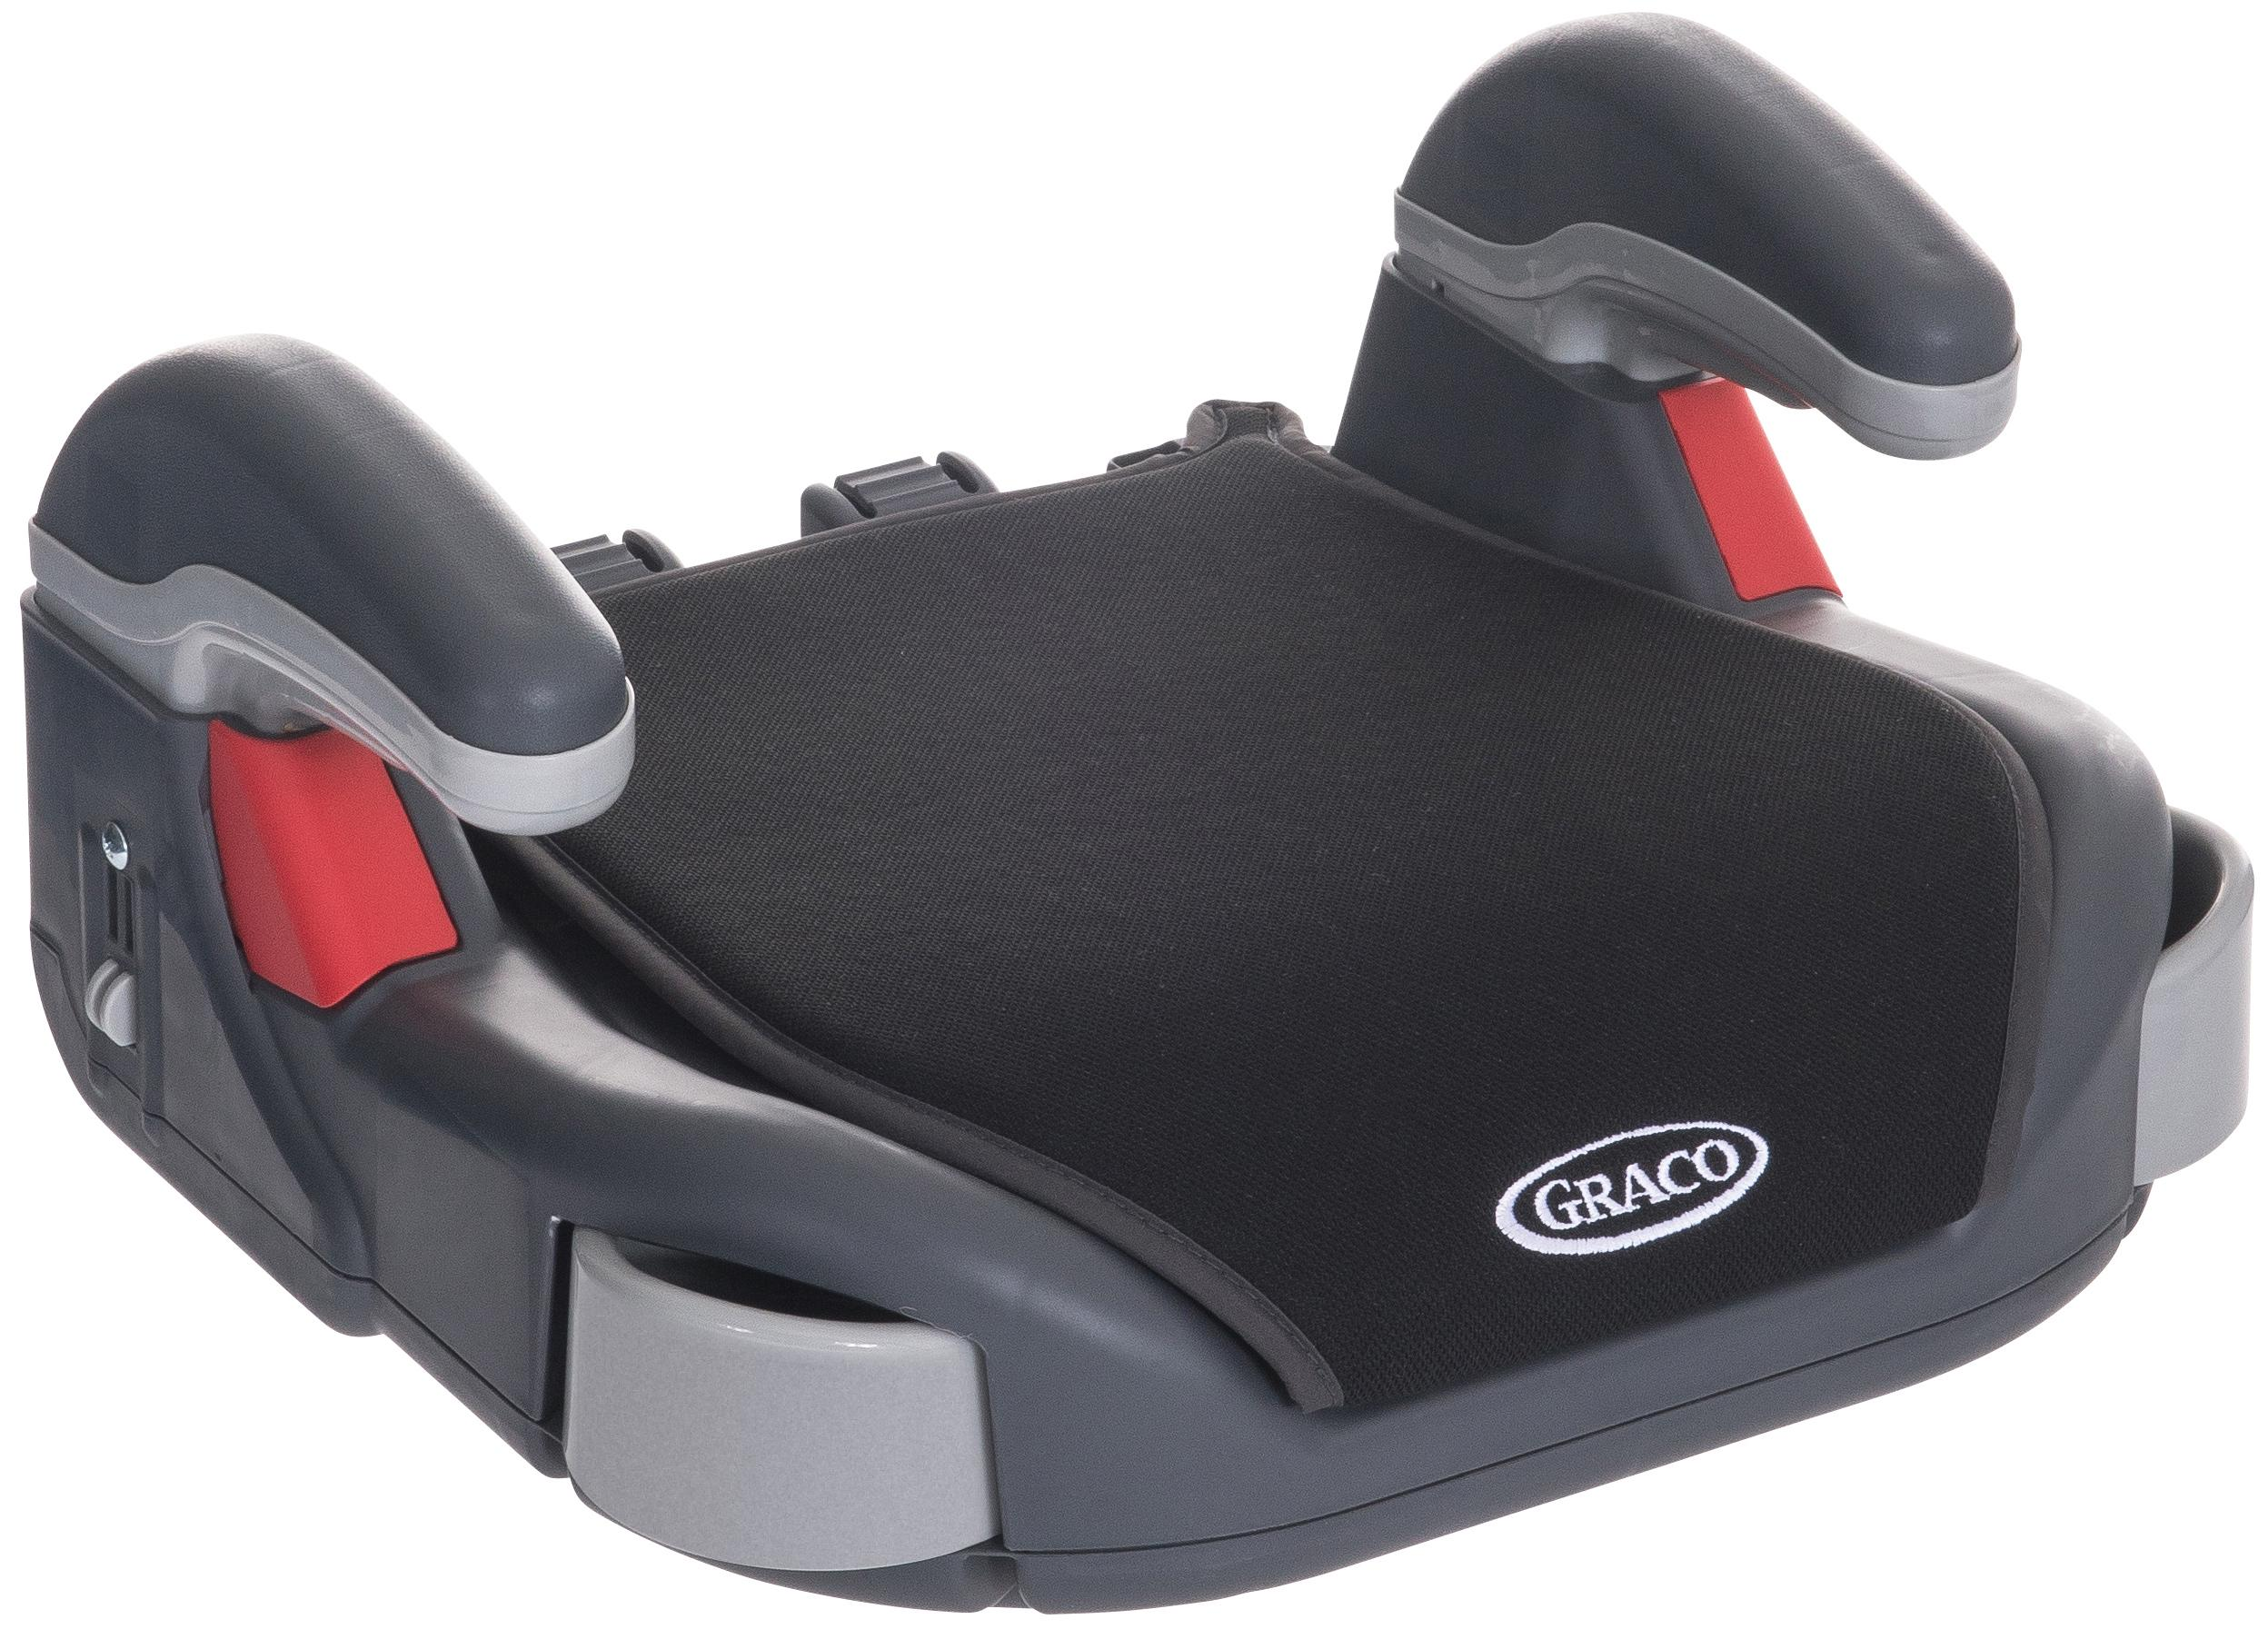 Graco Booster Basic Child Car Seat...